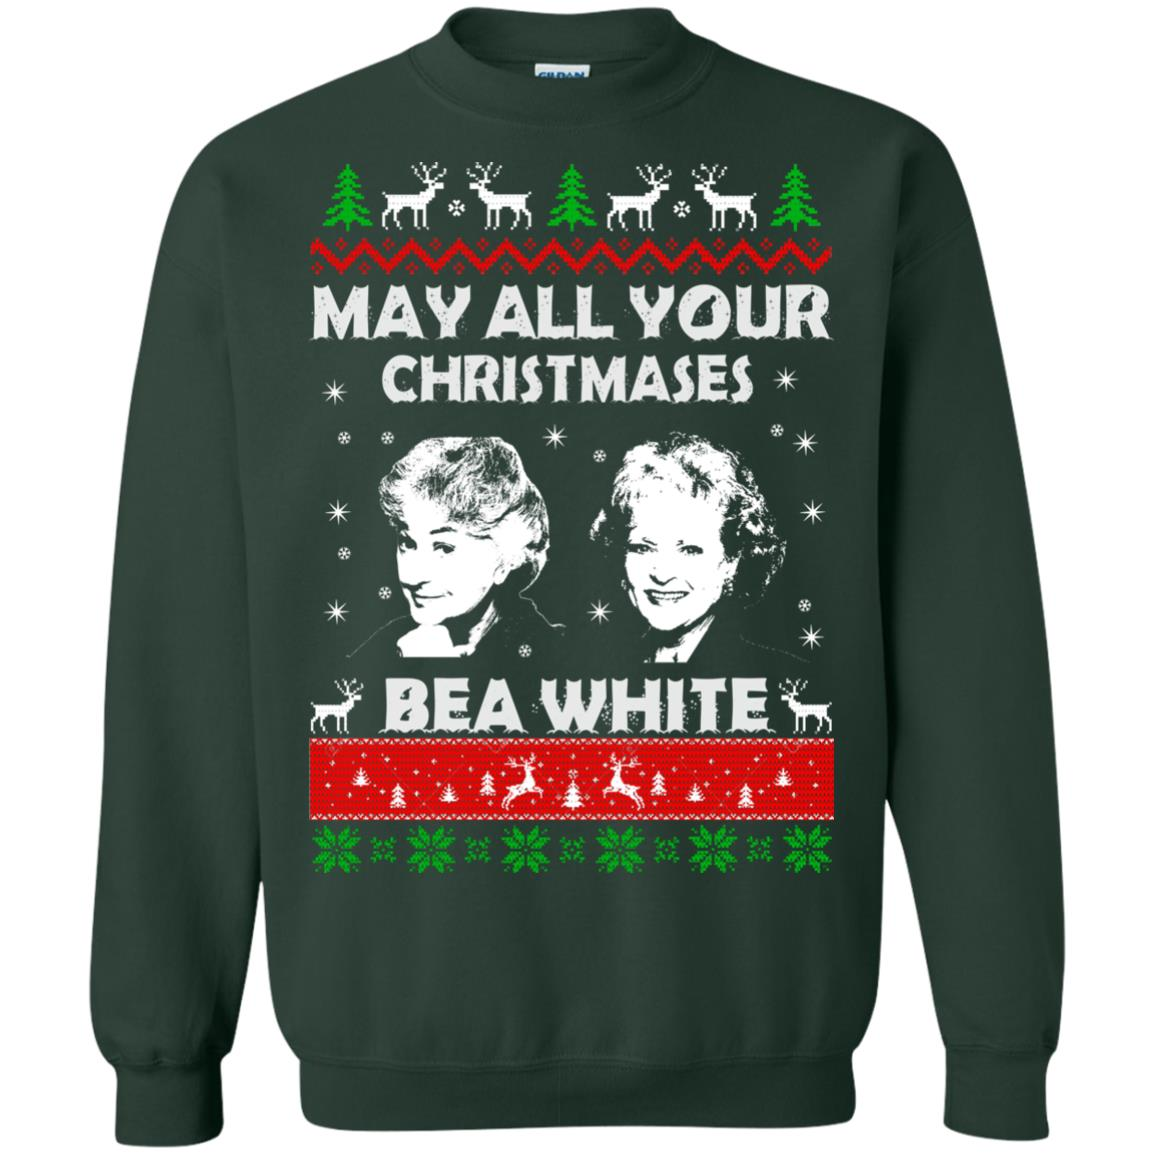 image 732 - May all your Christmases Bea White Ugly Sweater, Hoodie